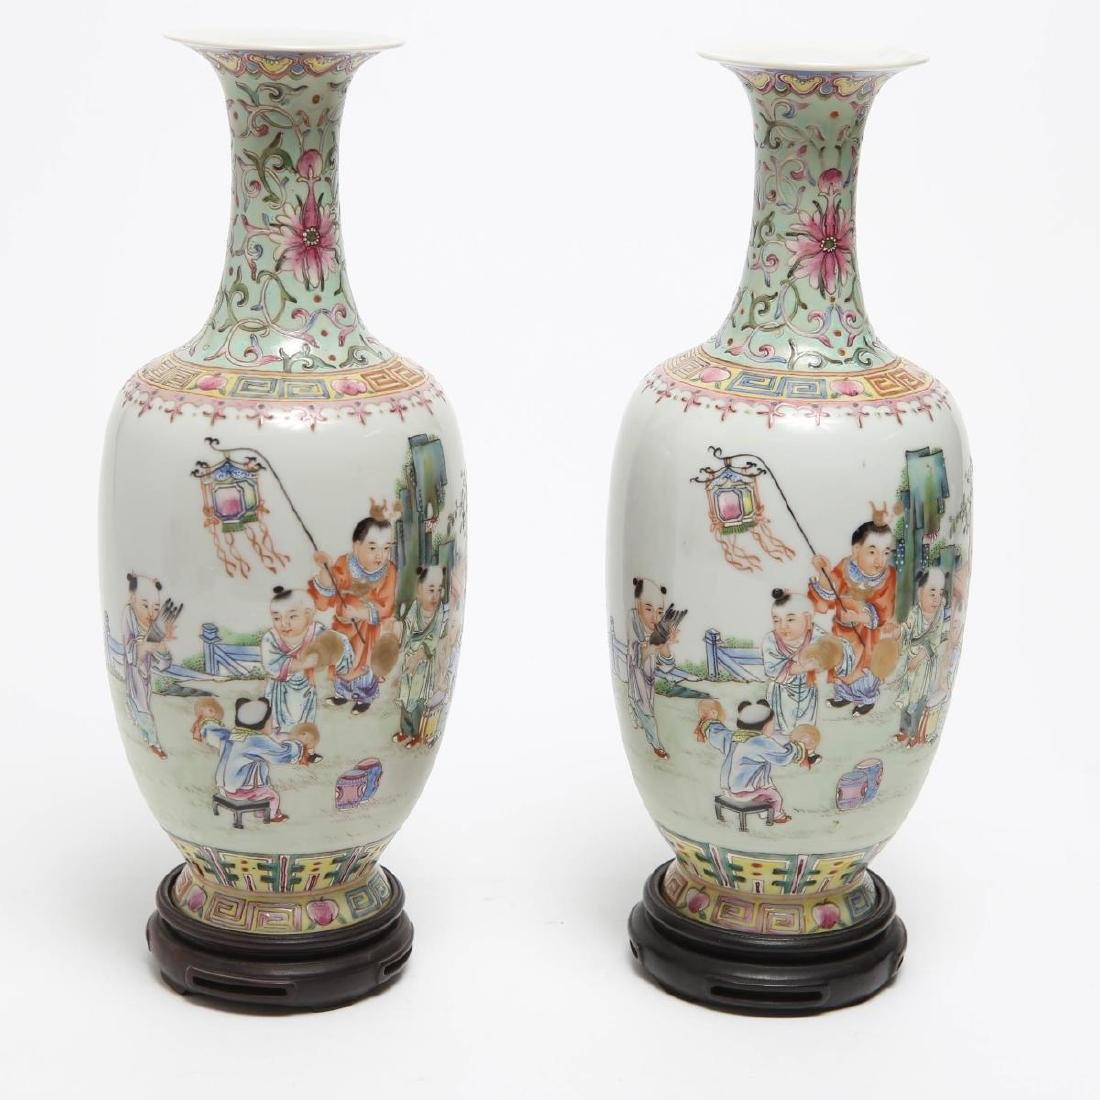 Chinese Famille Rose Export Porcelain Vases, Pair